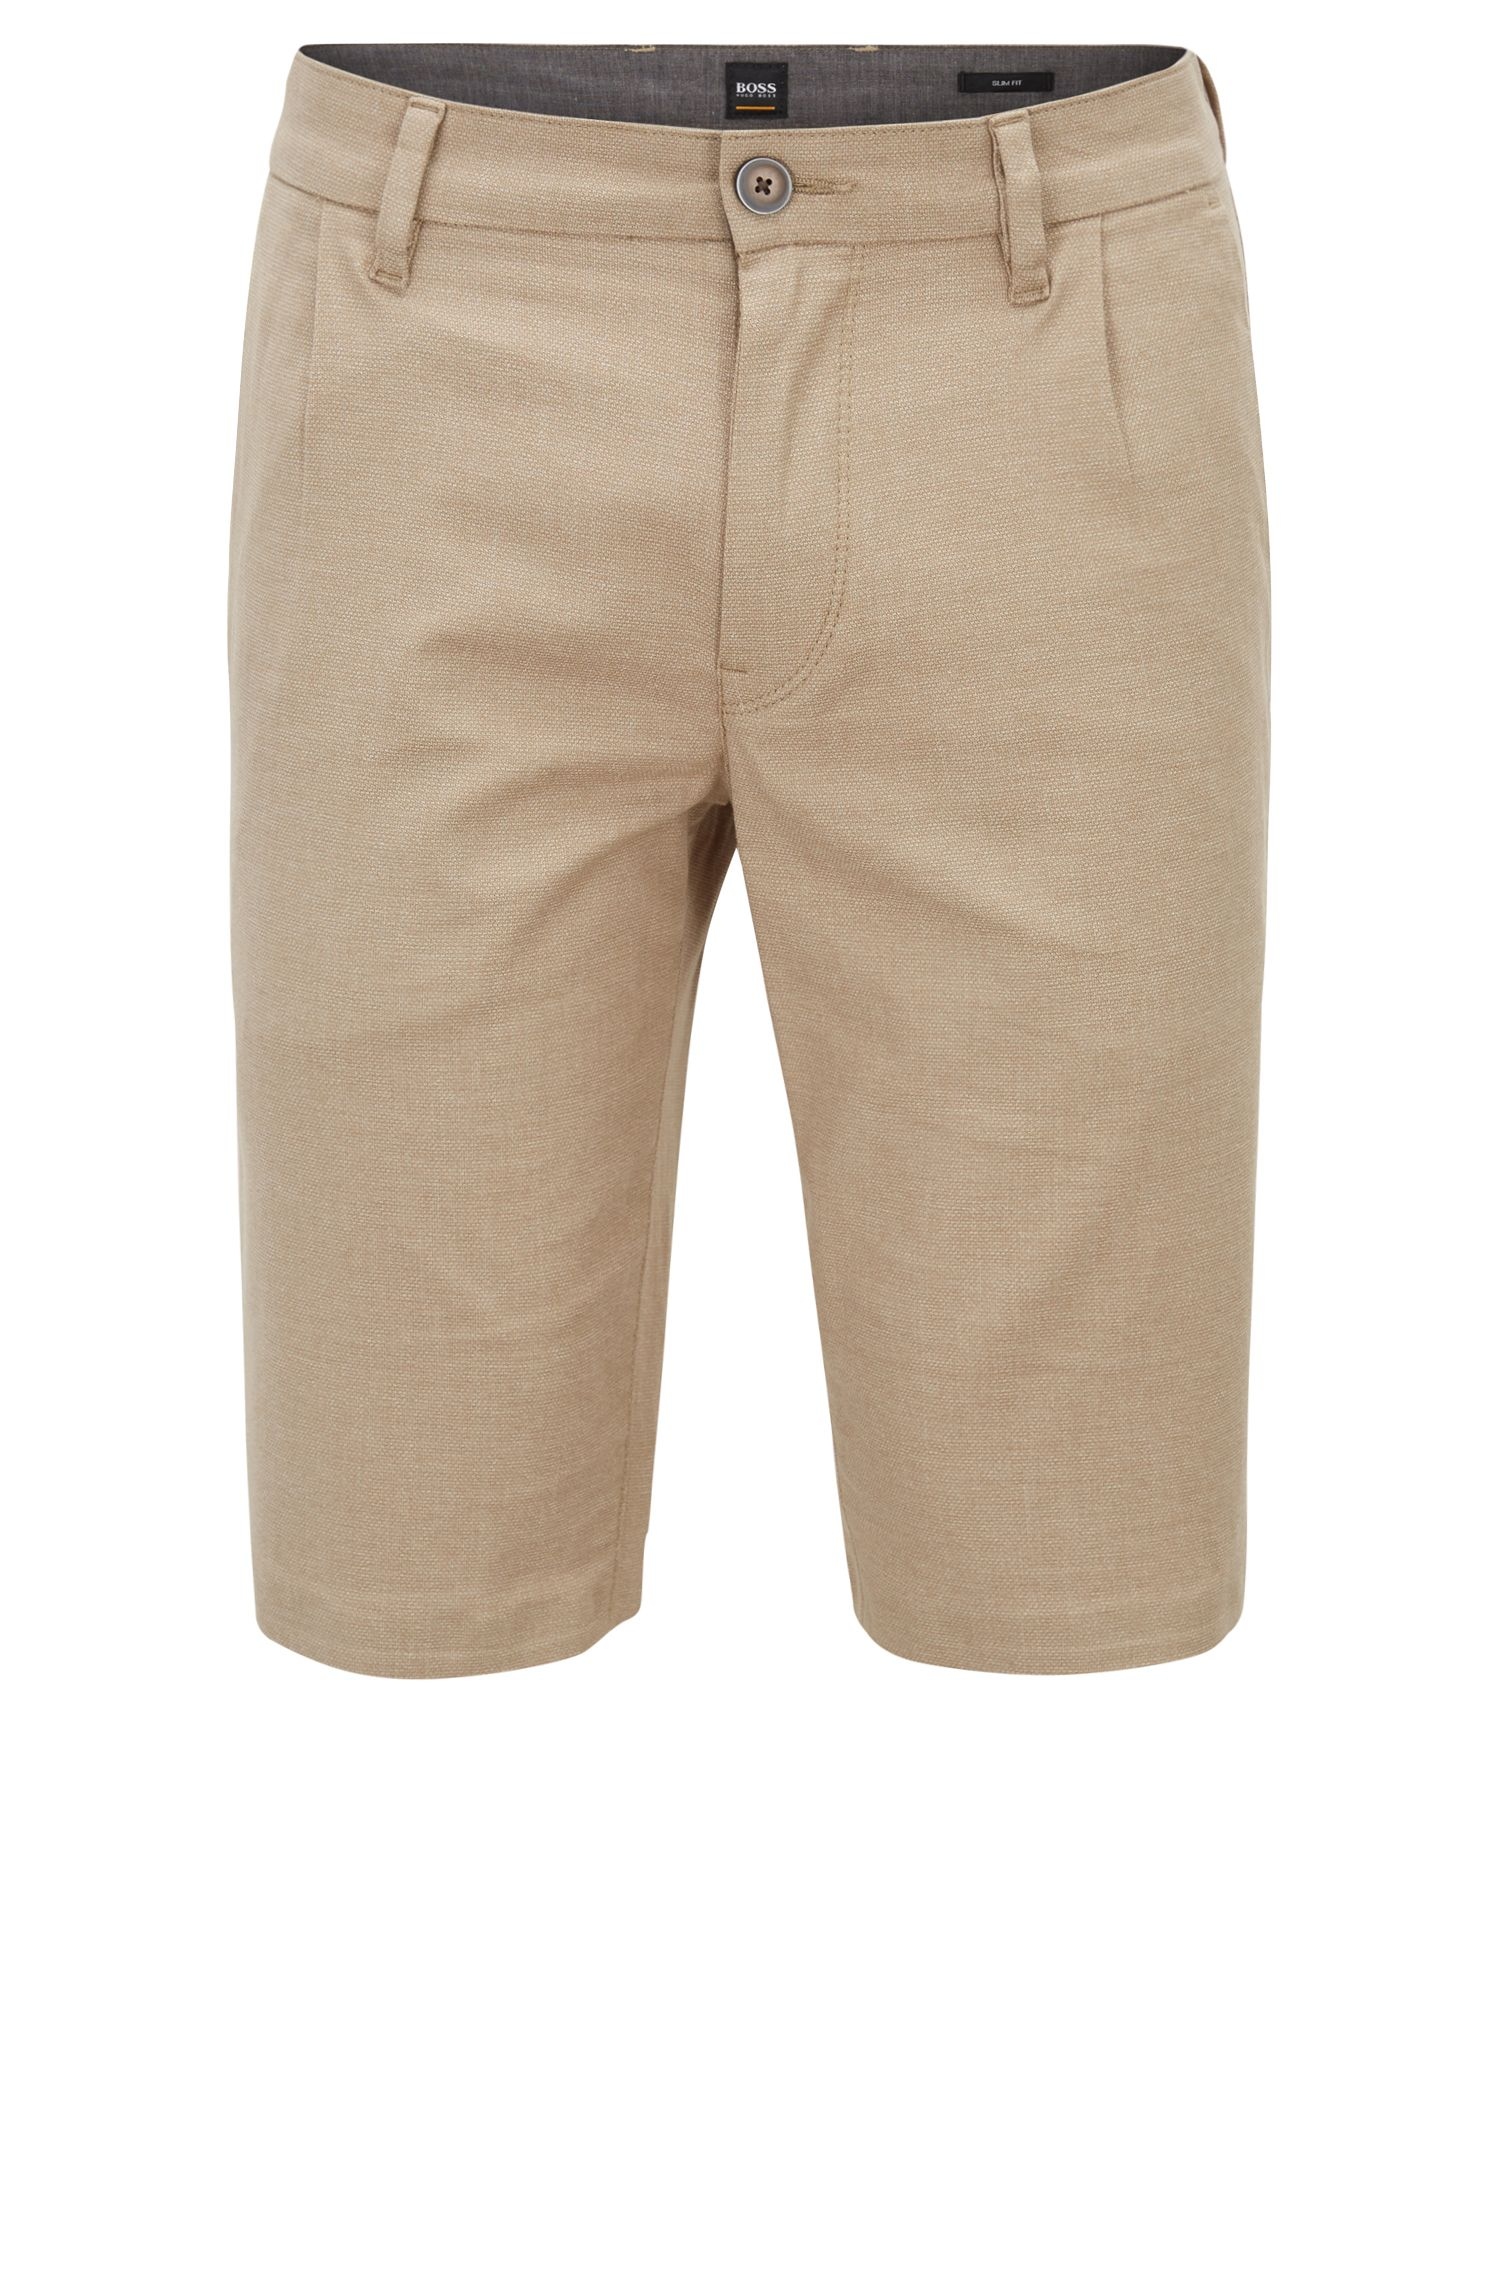 Slim-fit shorts in two-tone melange stretch cotton